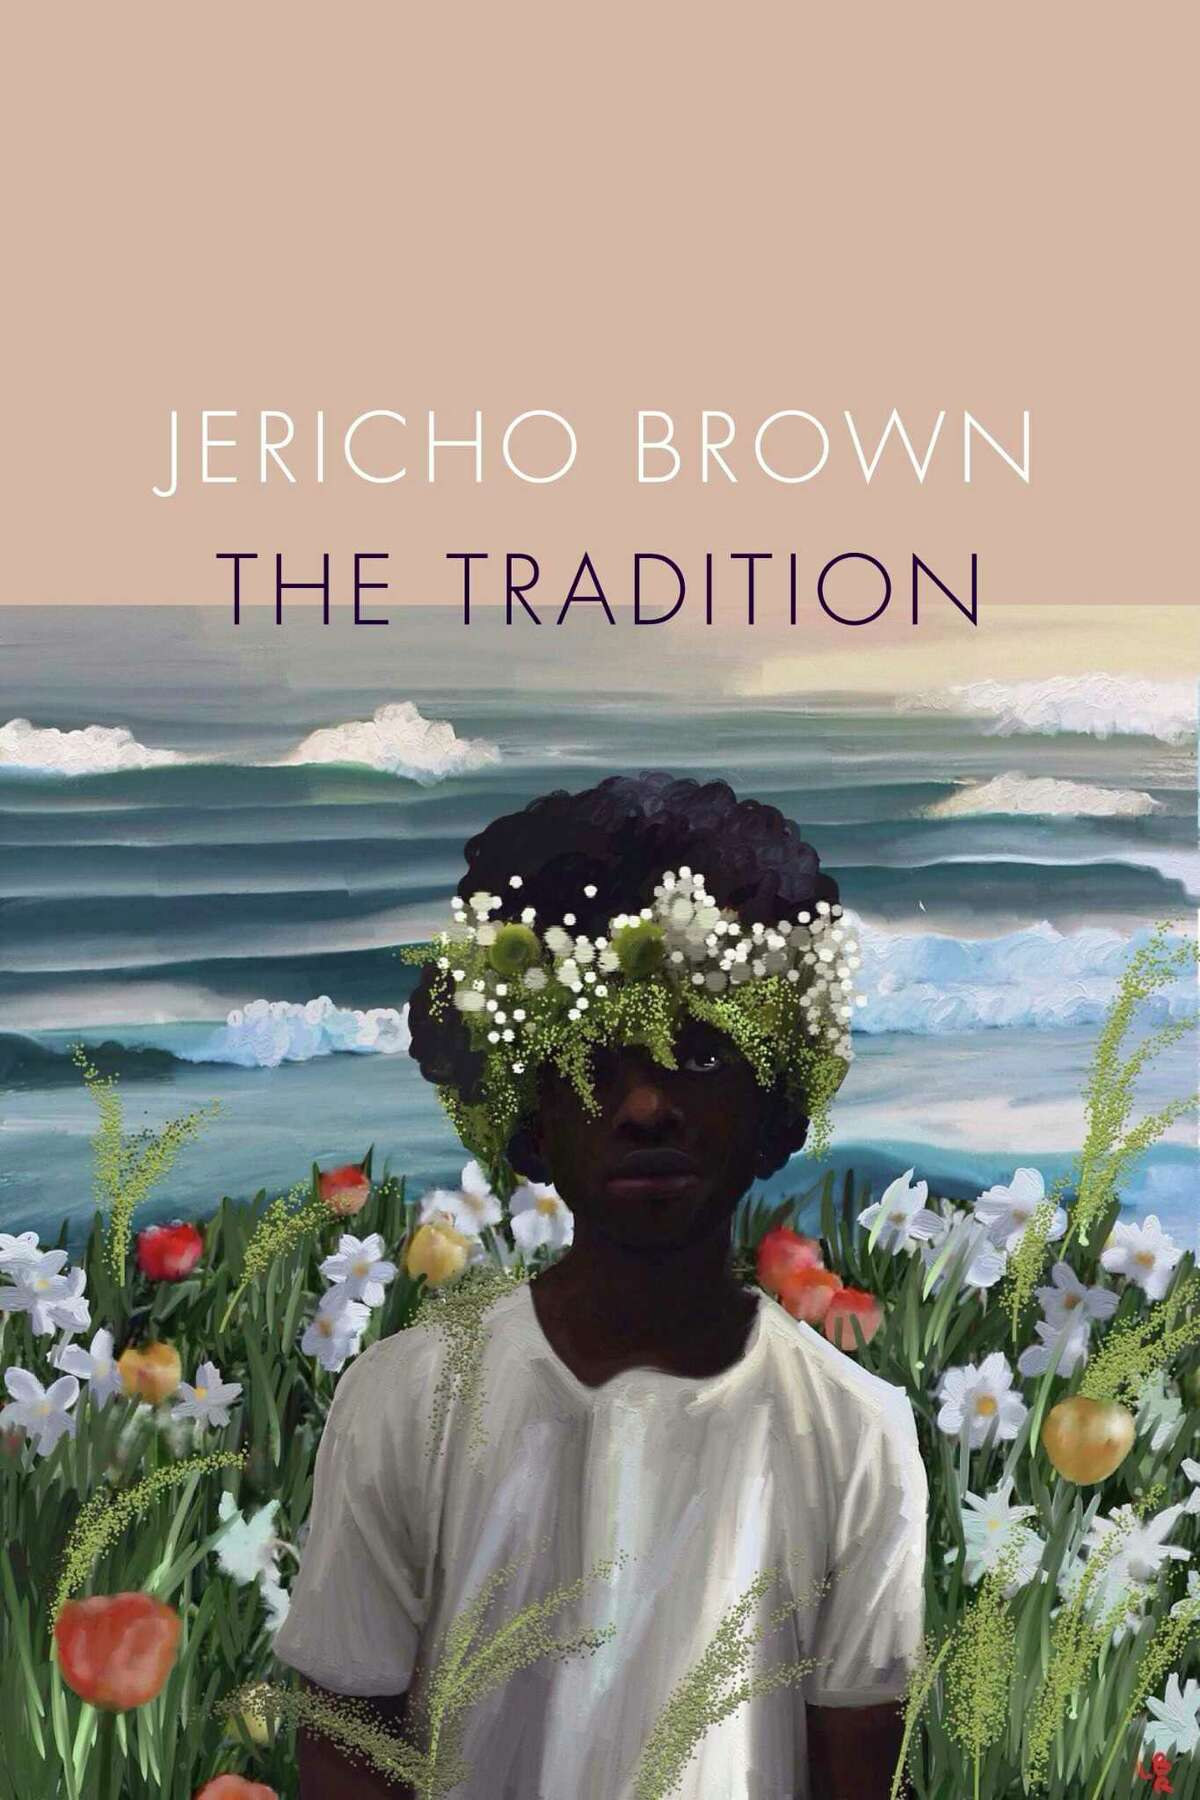 """This image released by Copper Canyon Press shows """"The Tradition,"""" by Jericho Brown, winner of the Pulitzer Prize for Poetry. (Copper Canyon Press via AP)"""